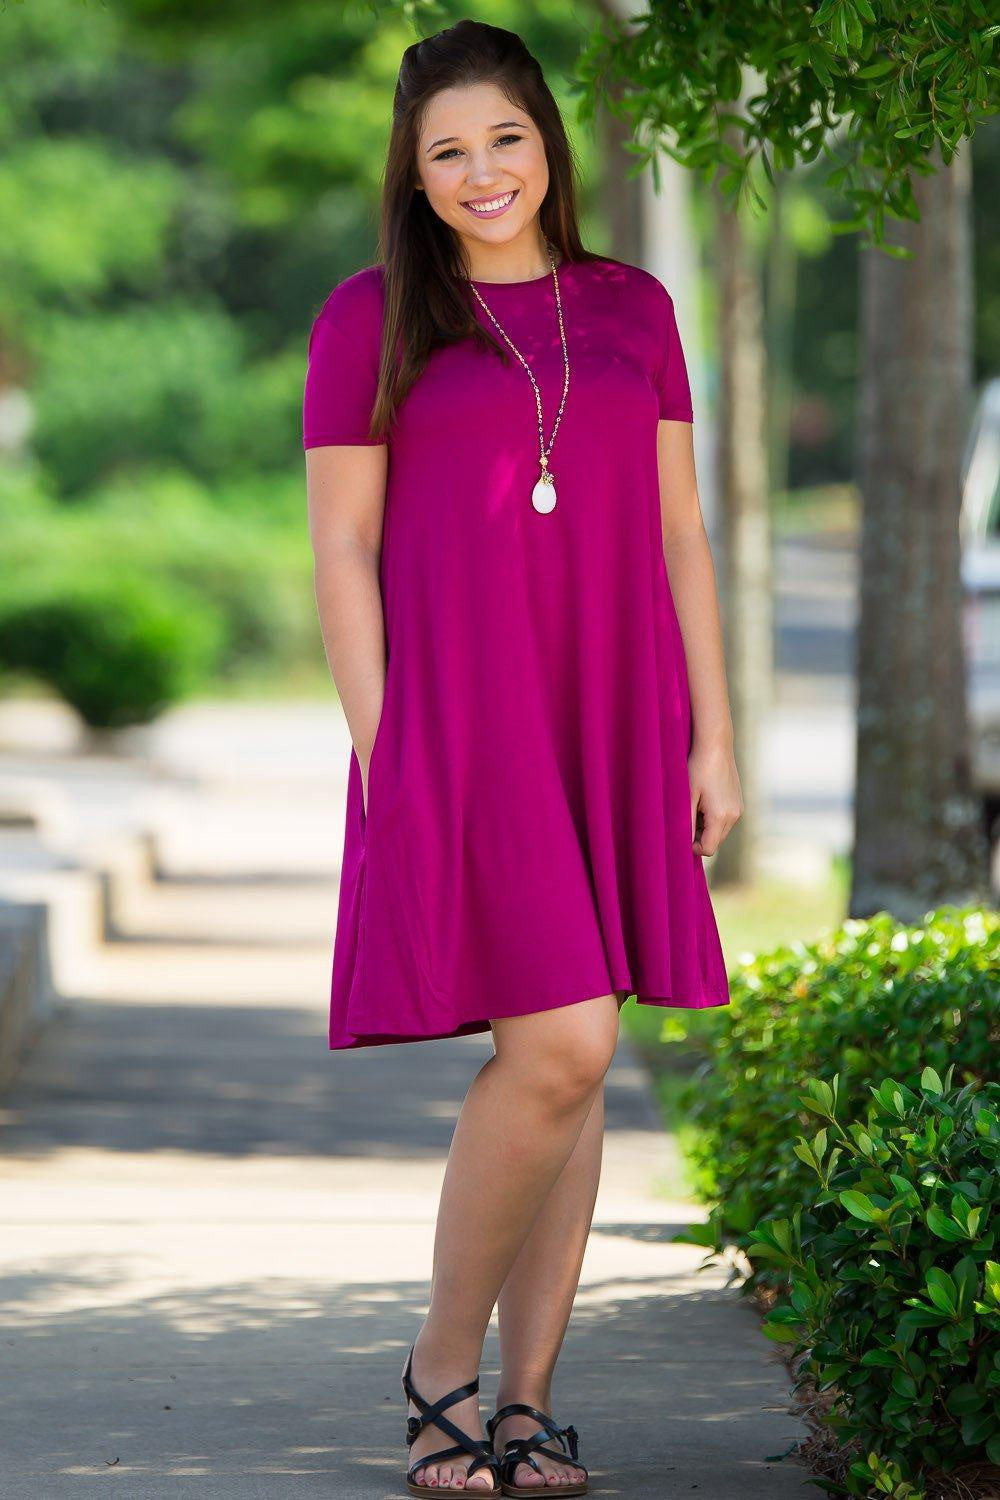 Piko Short Sleeve Swing Dress - Bright Fuchsia - Piko Clothing - 2